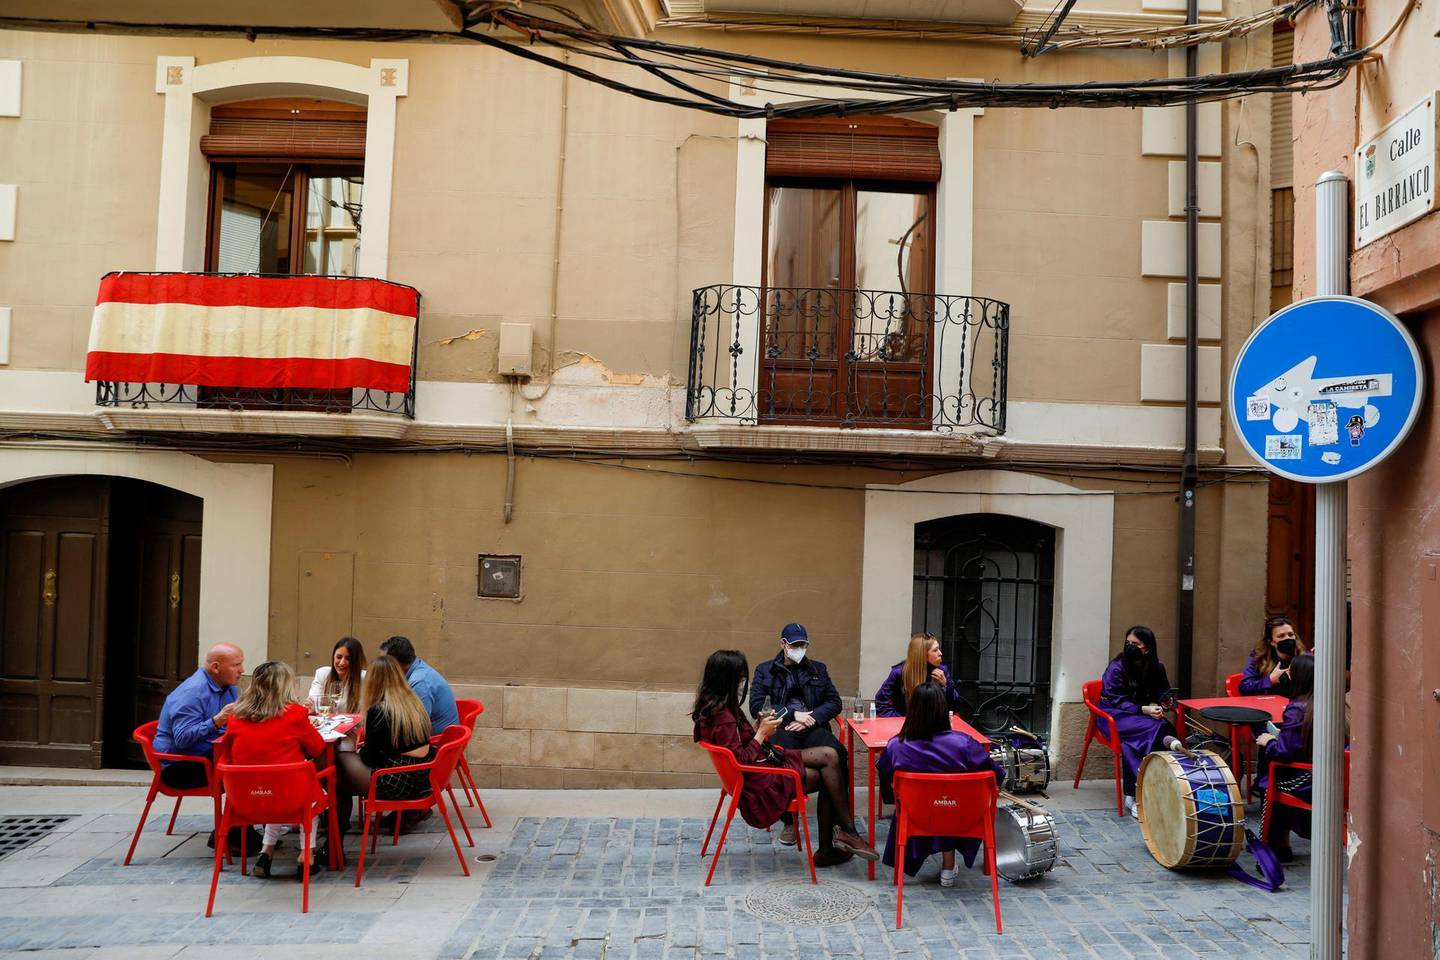 """FILE PHOTO: People at a restaurant terrace at the end of Good Friday's """"Rompida de la Hora"""" (Breaking of the hour) in Calanda, Spain, April 2, 2021. REUTERS/Susana Vera/File Photo"""